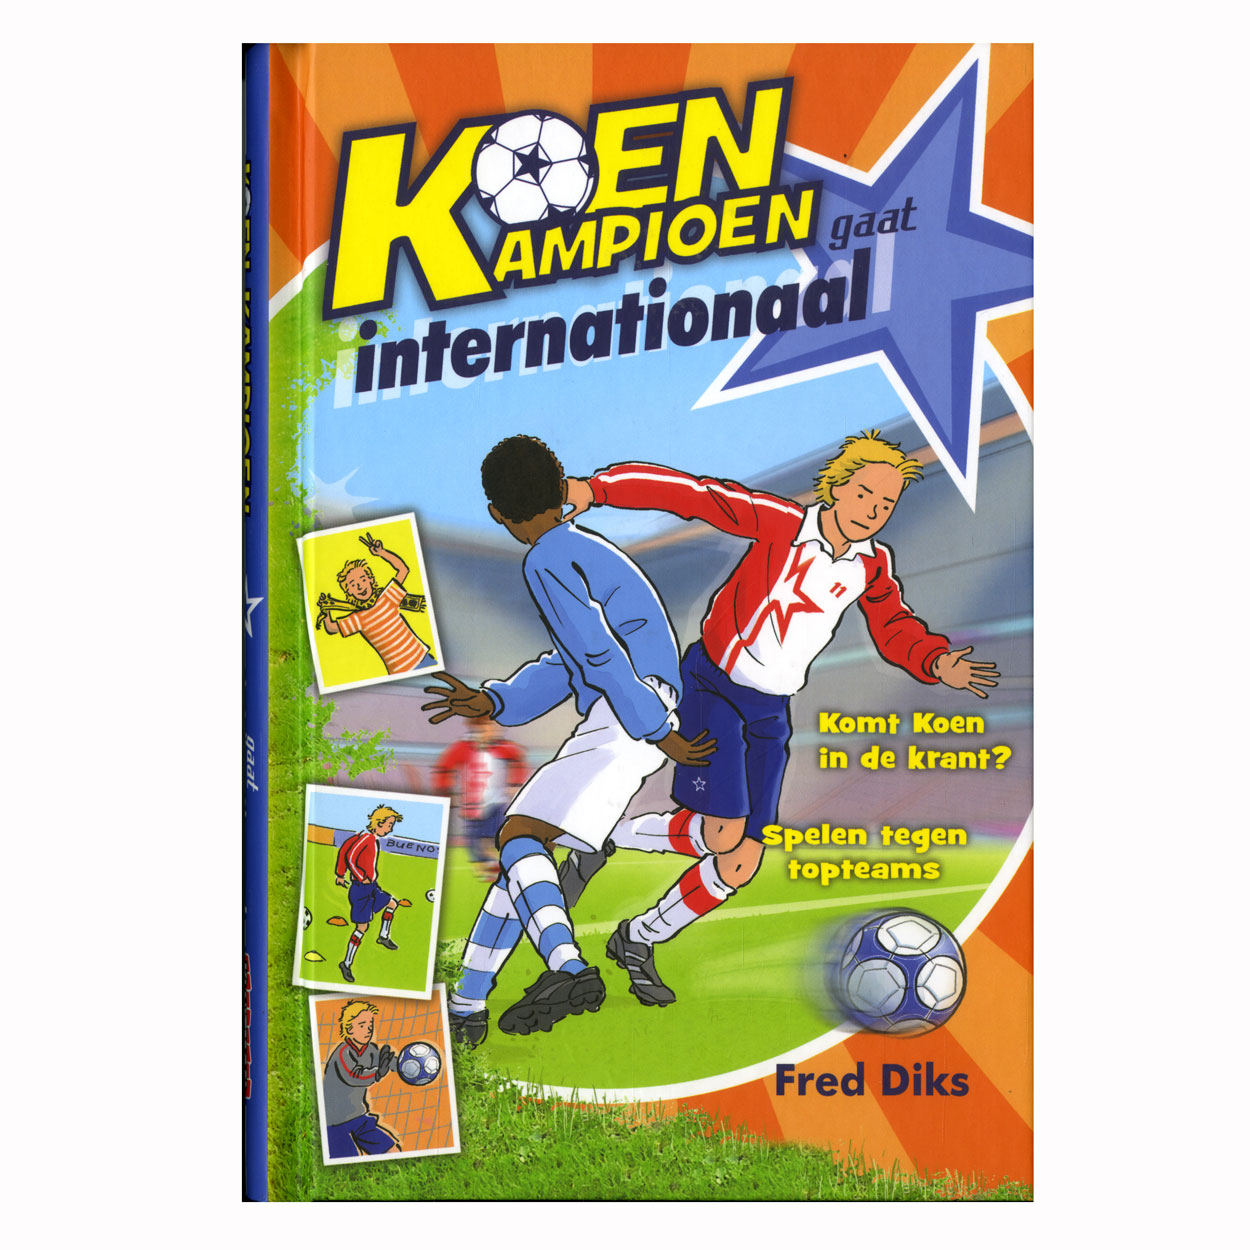 Koen Kampioen Gaat Internationaal